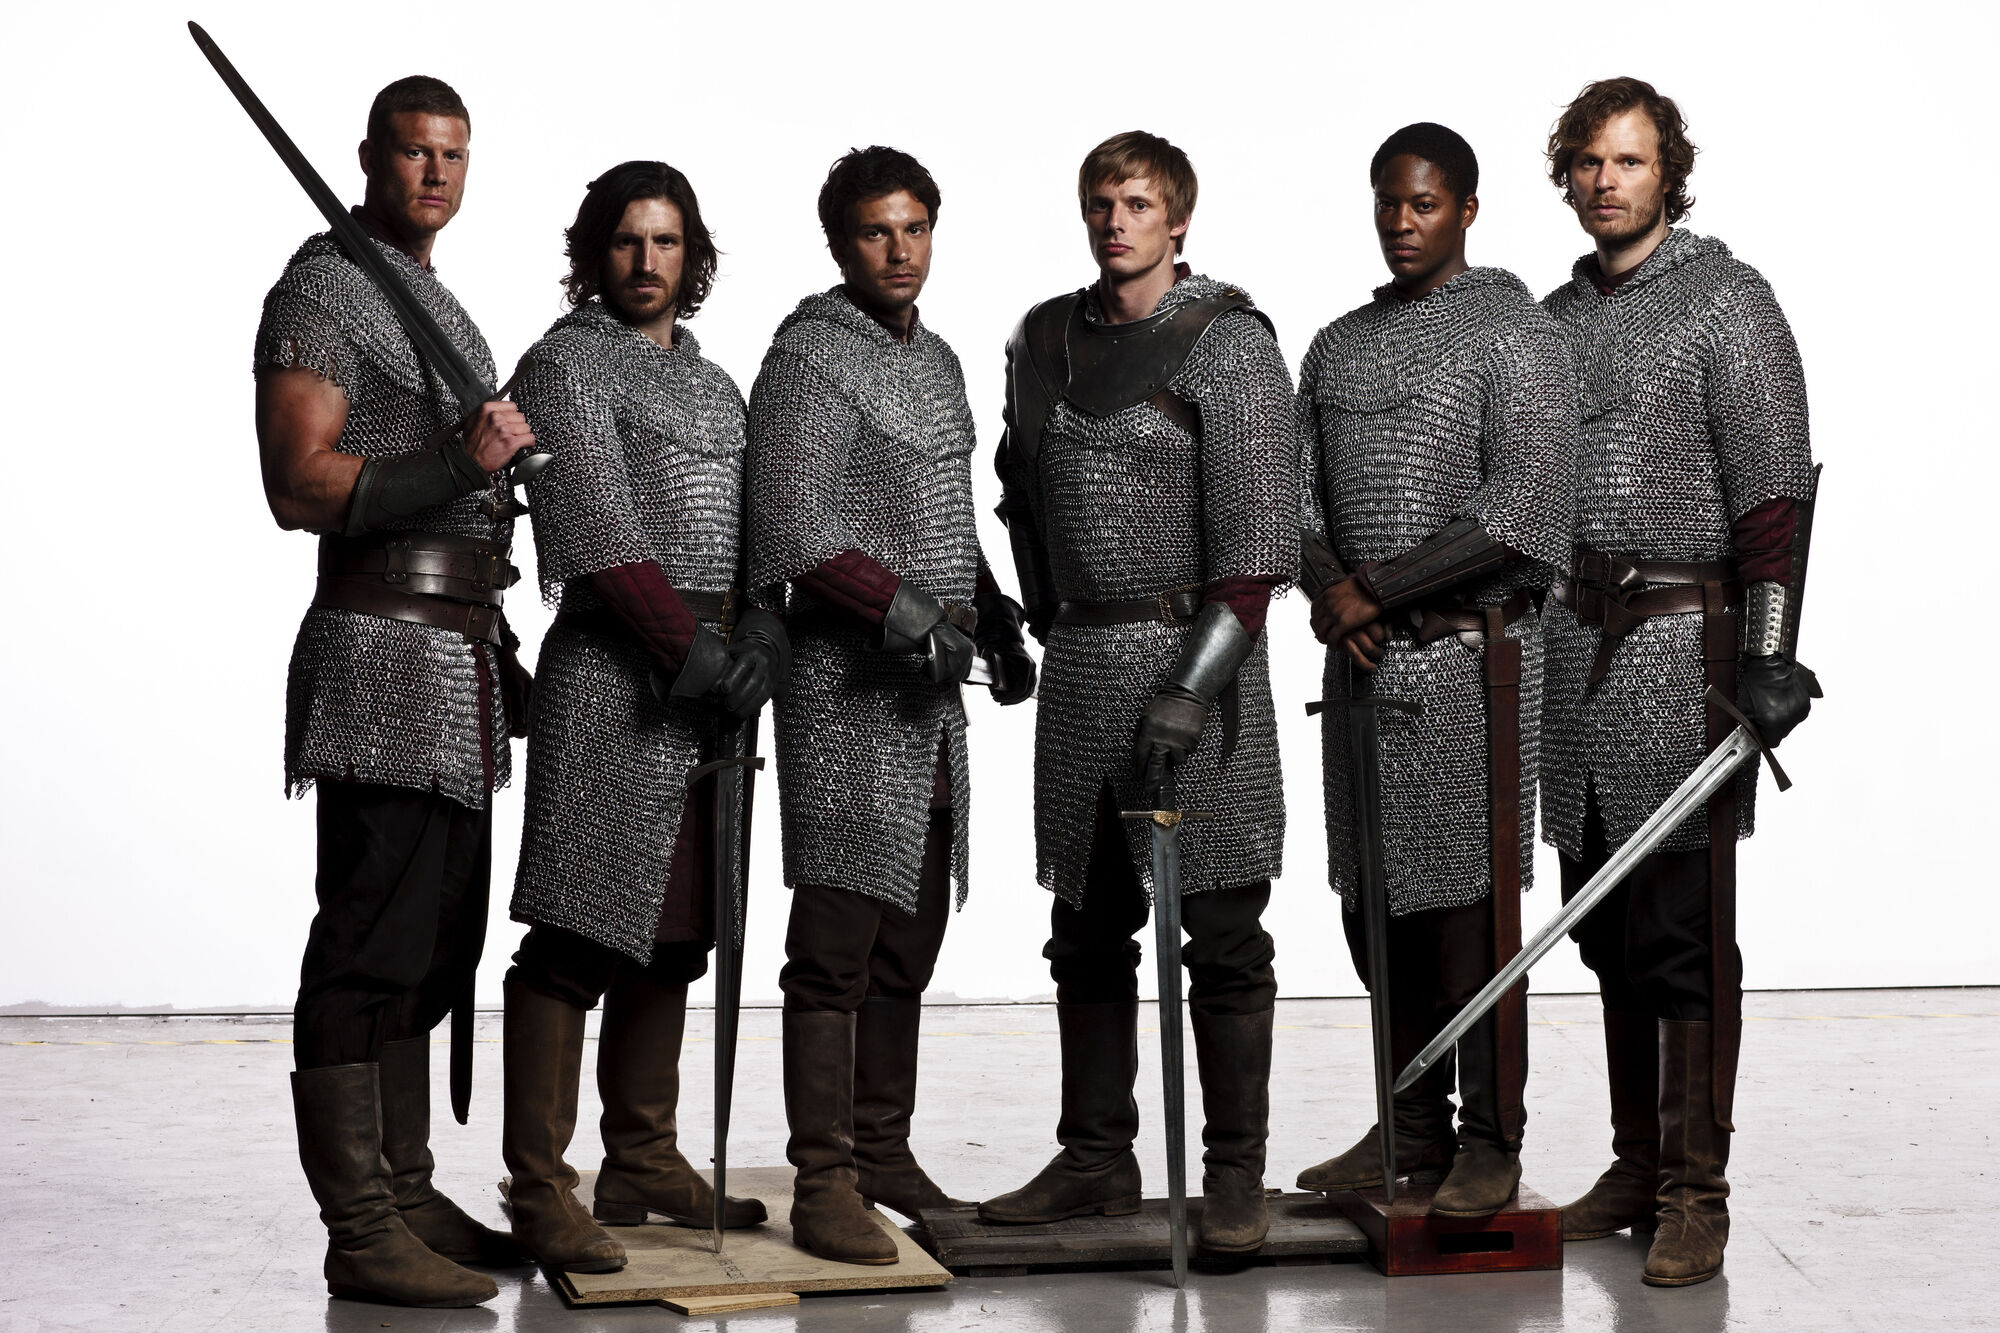 Knights Of The Round Table Merlin Wiki Fandom Powered